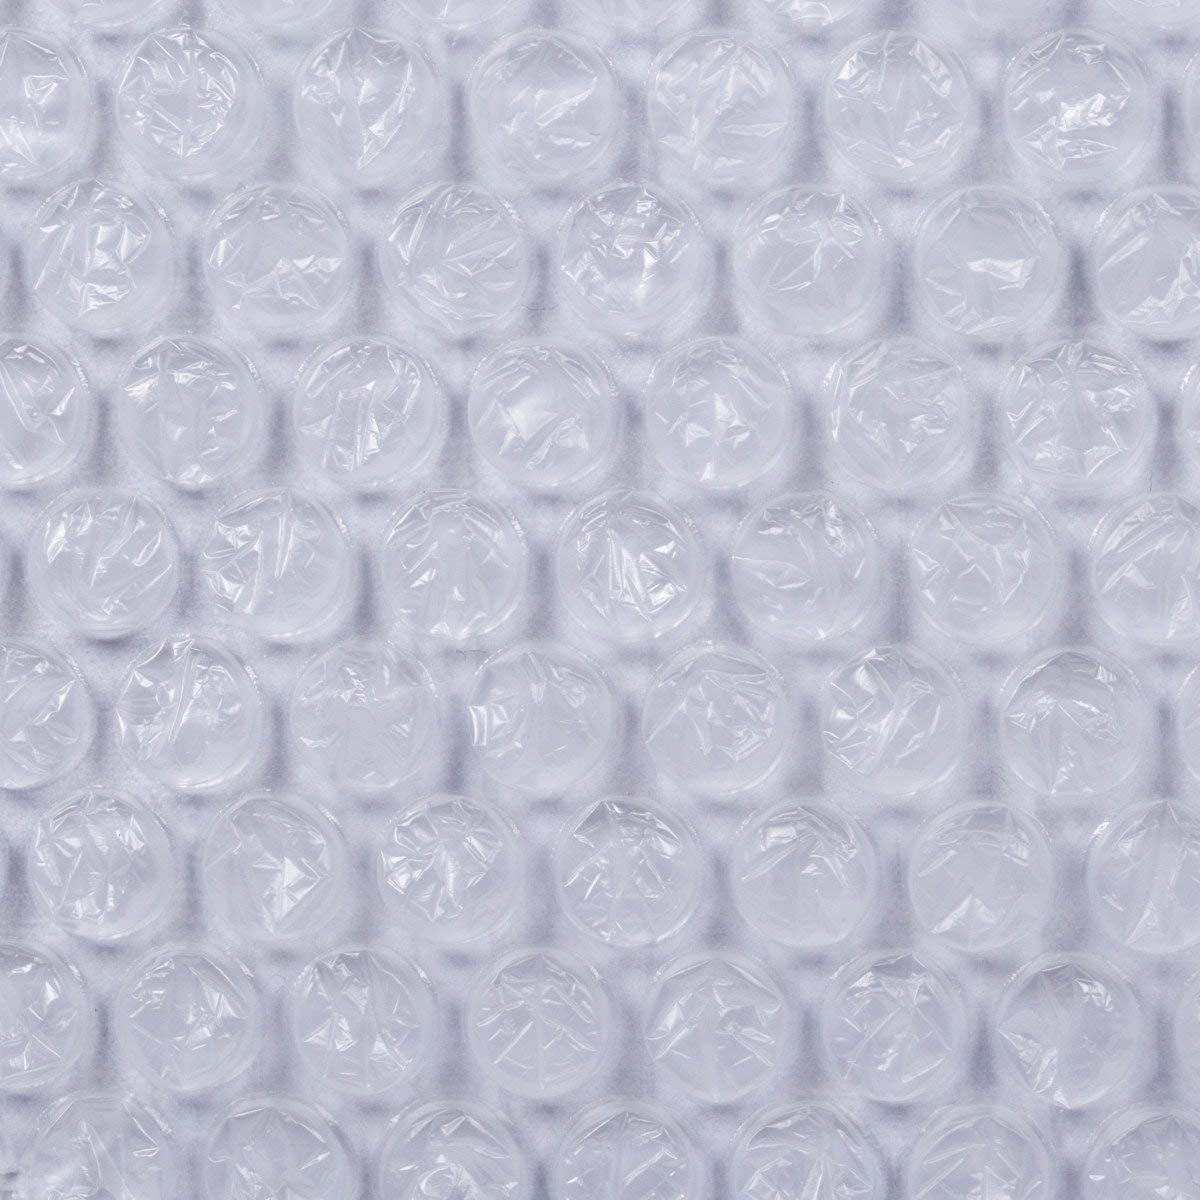 12 x 60 Duck Brand Bubble Wrap Roll 1061835 Original Bubble Cushioning 2 Pack 12 in. x 60 ft. Perforated Every 12